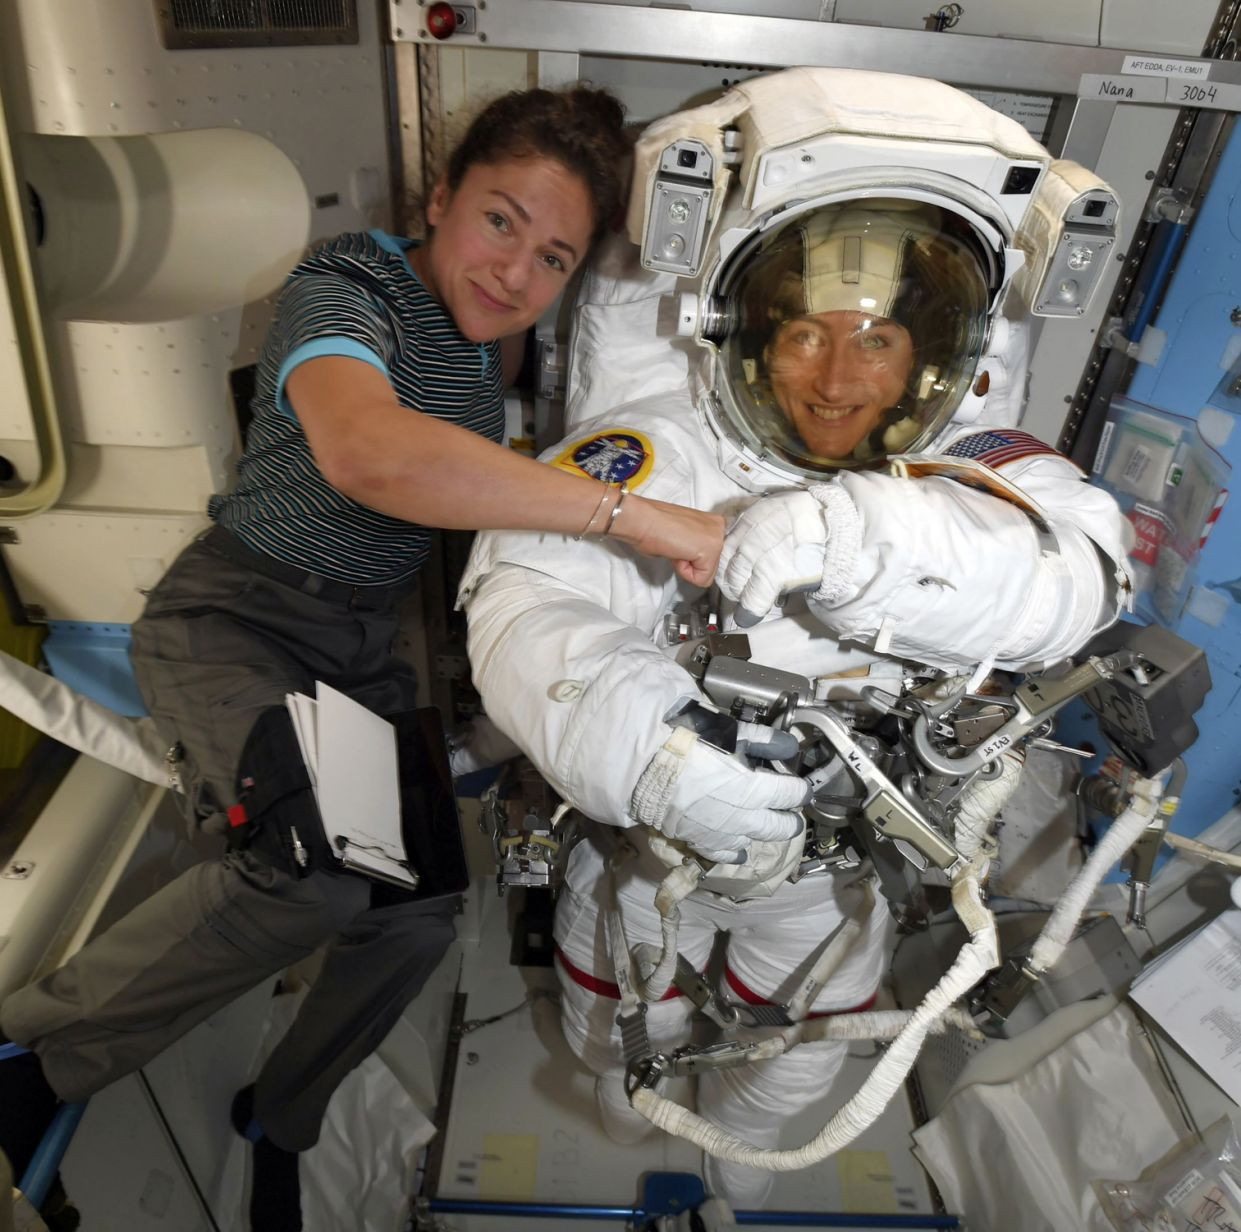 Astronauts Jessica Meira, left, and Christina Koch on the International Space Station. (NASA via The New York Times)